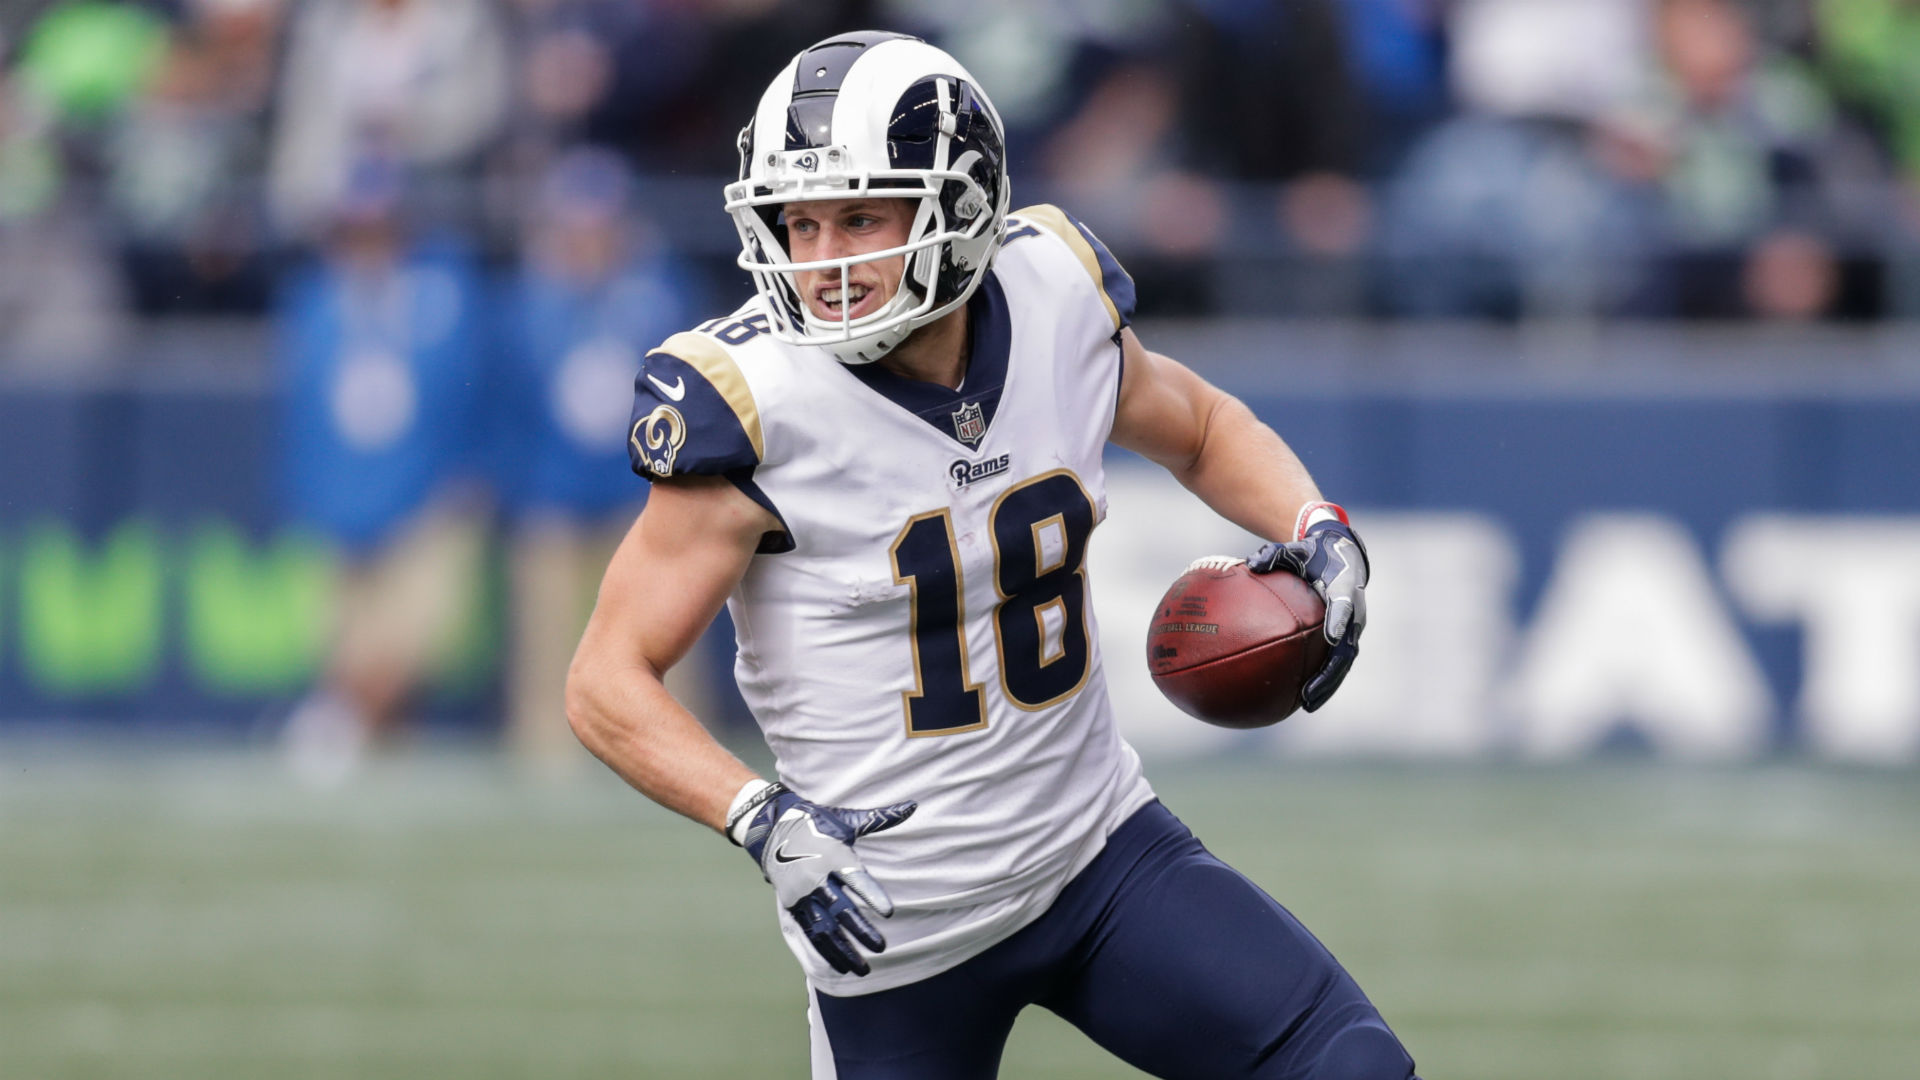 Cooper Kupp injury update: Rams WR out for season with torn ACL